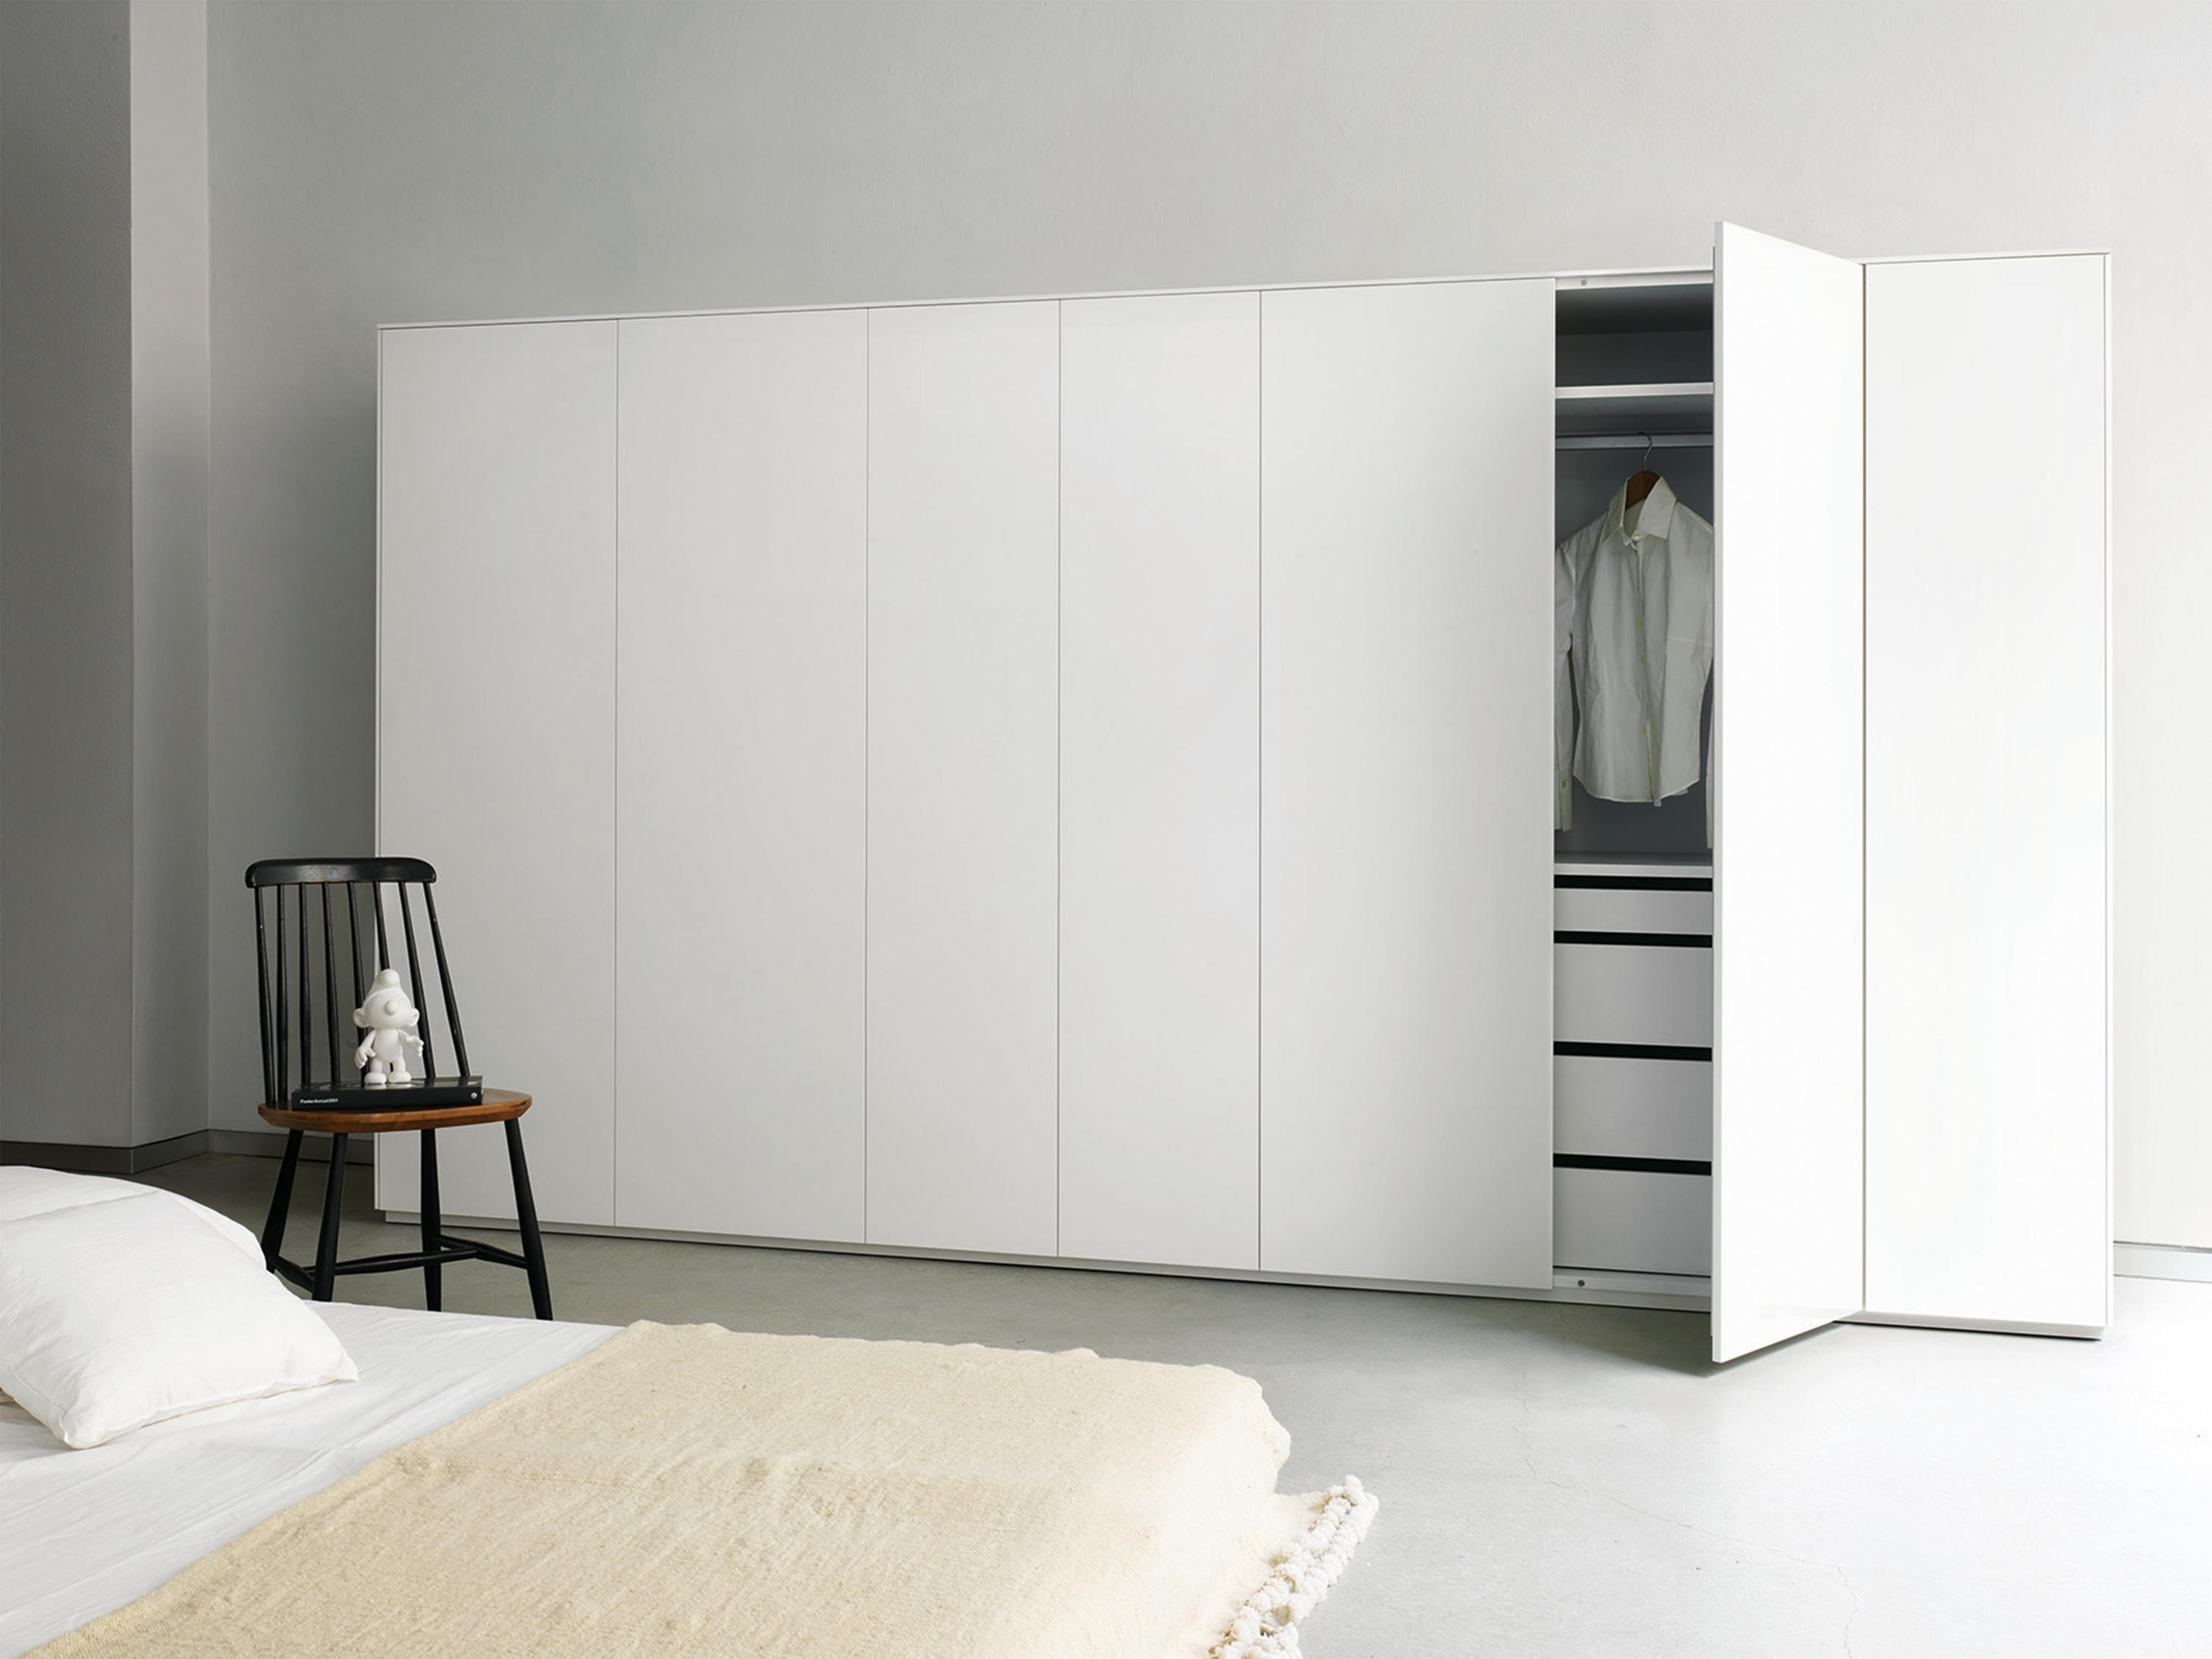 w furniture with d rsi lowes wood shop featured stunning of estate along x white wardrobe h cabinet photo in